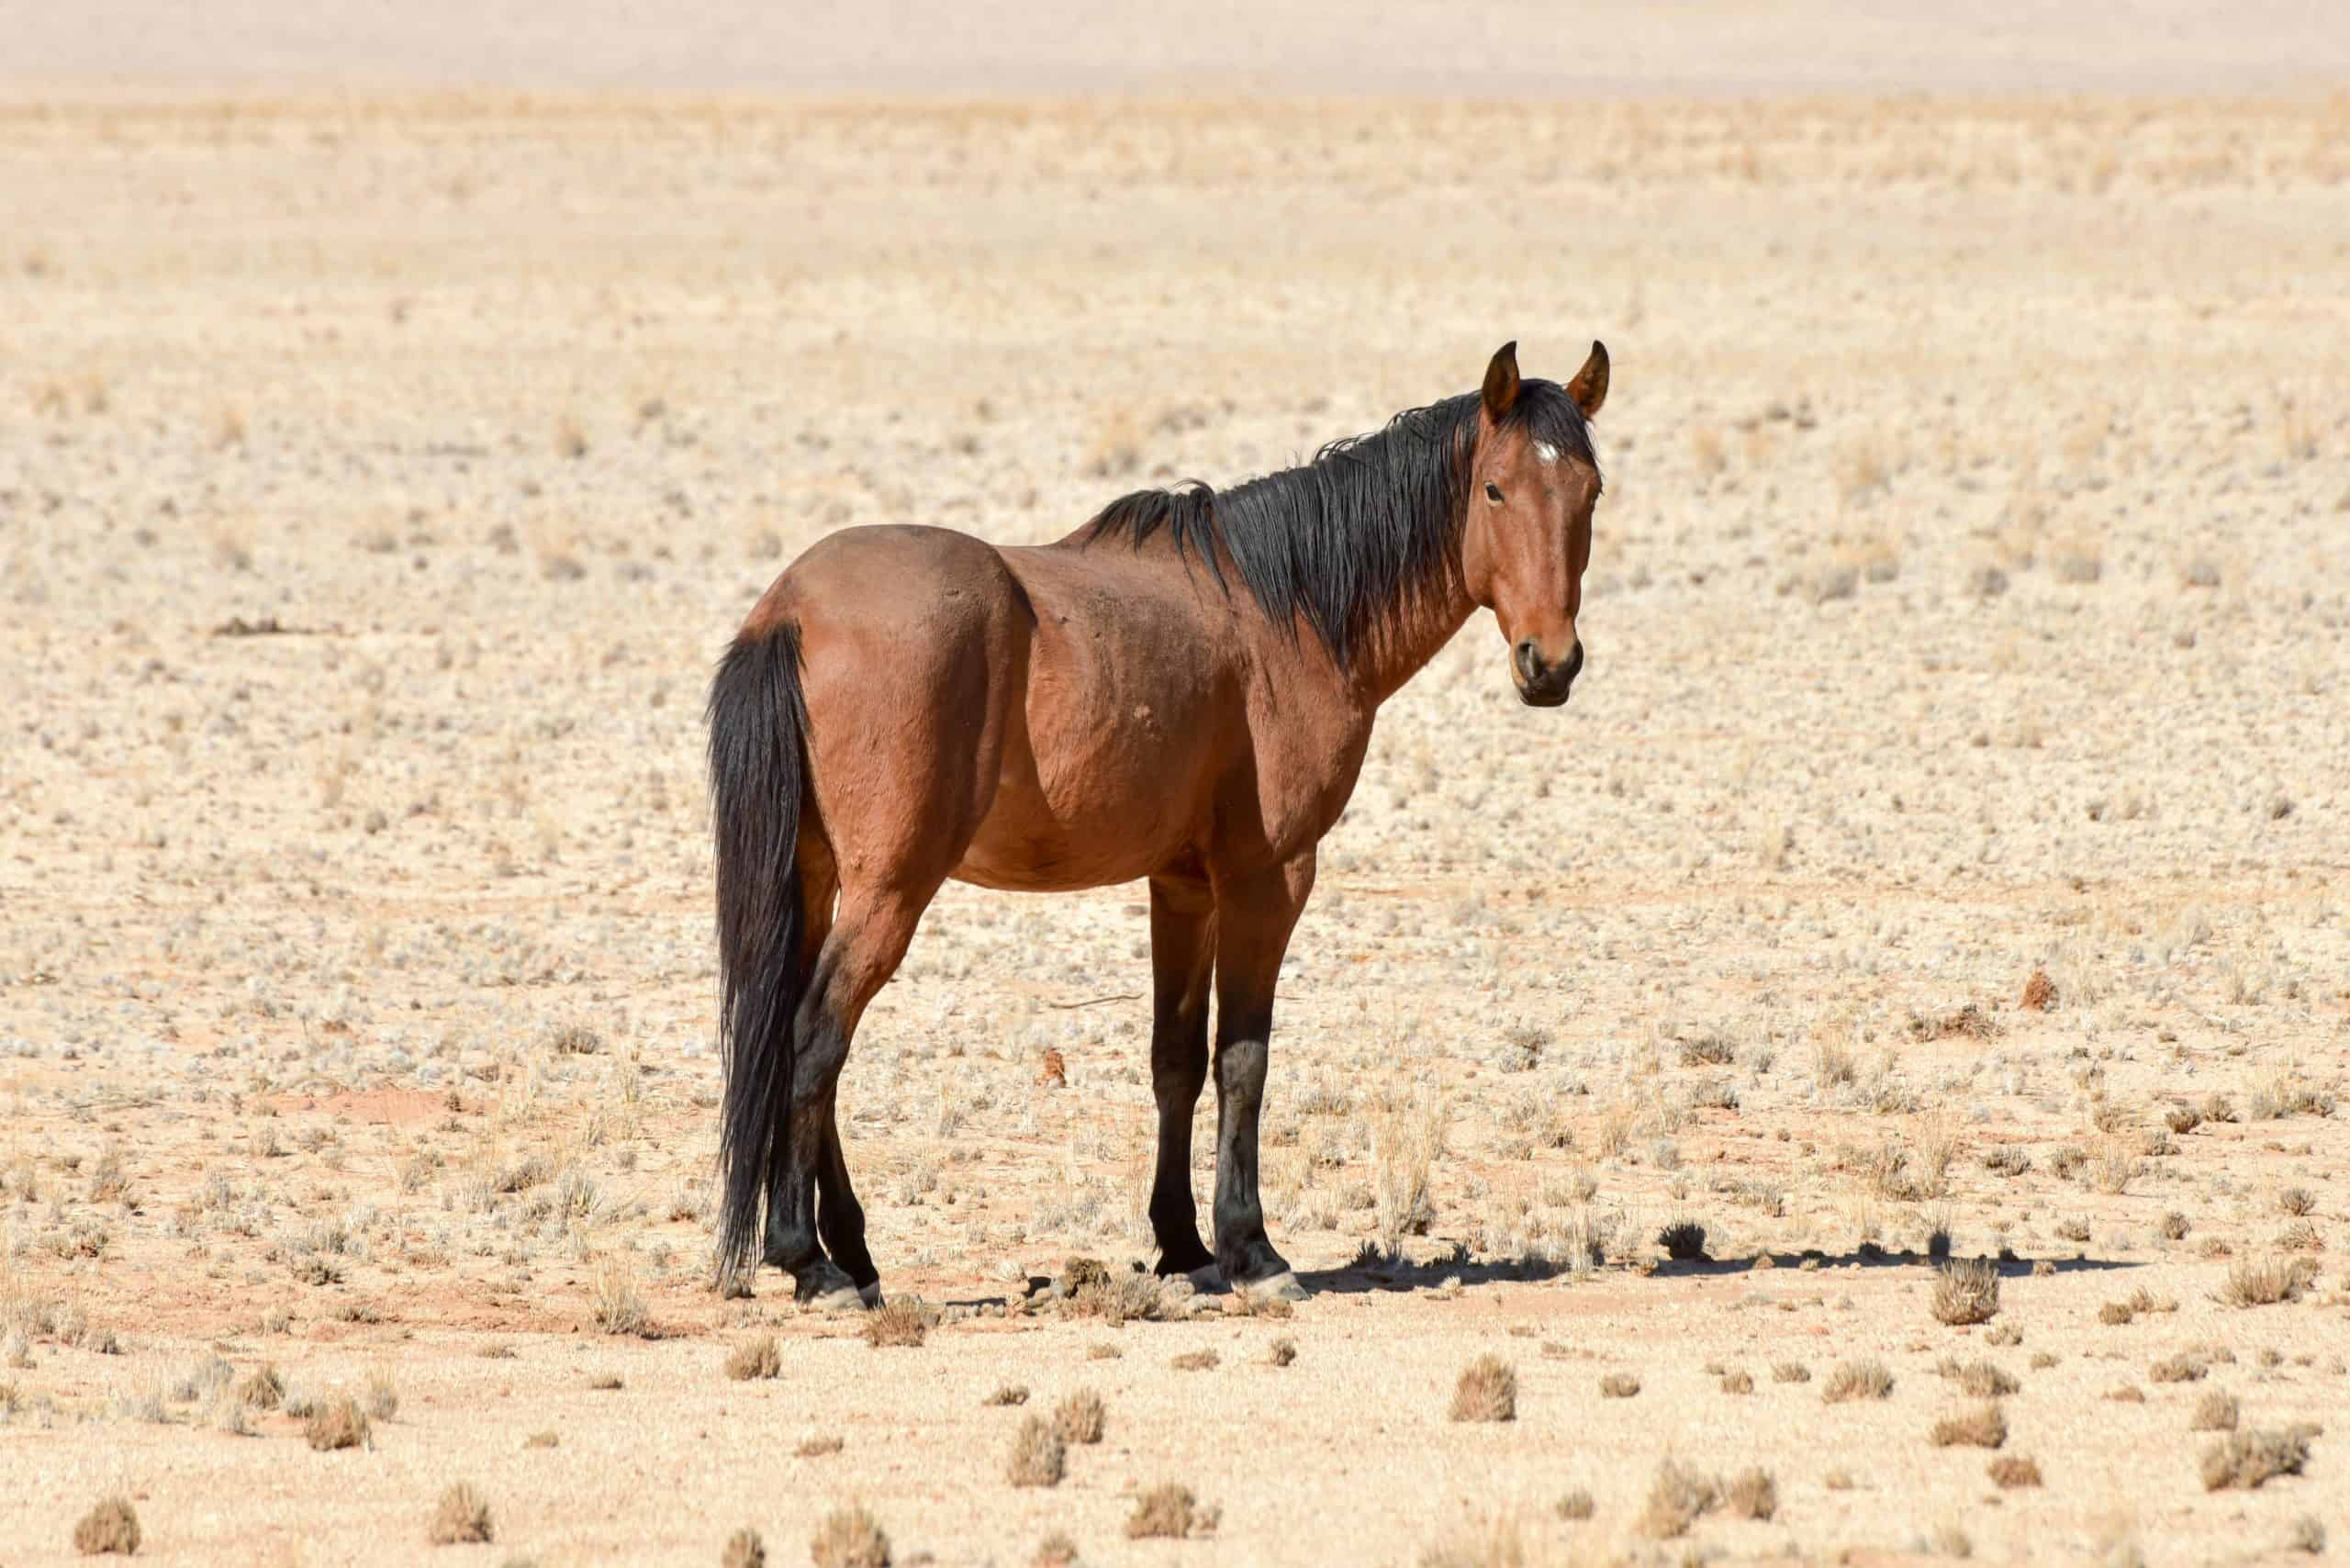 Horses in the desert landscape of Namibia.